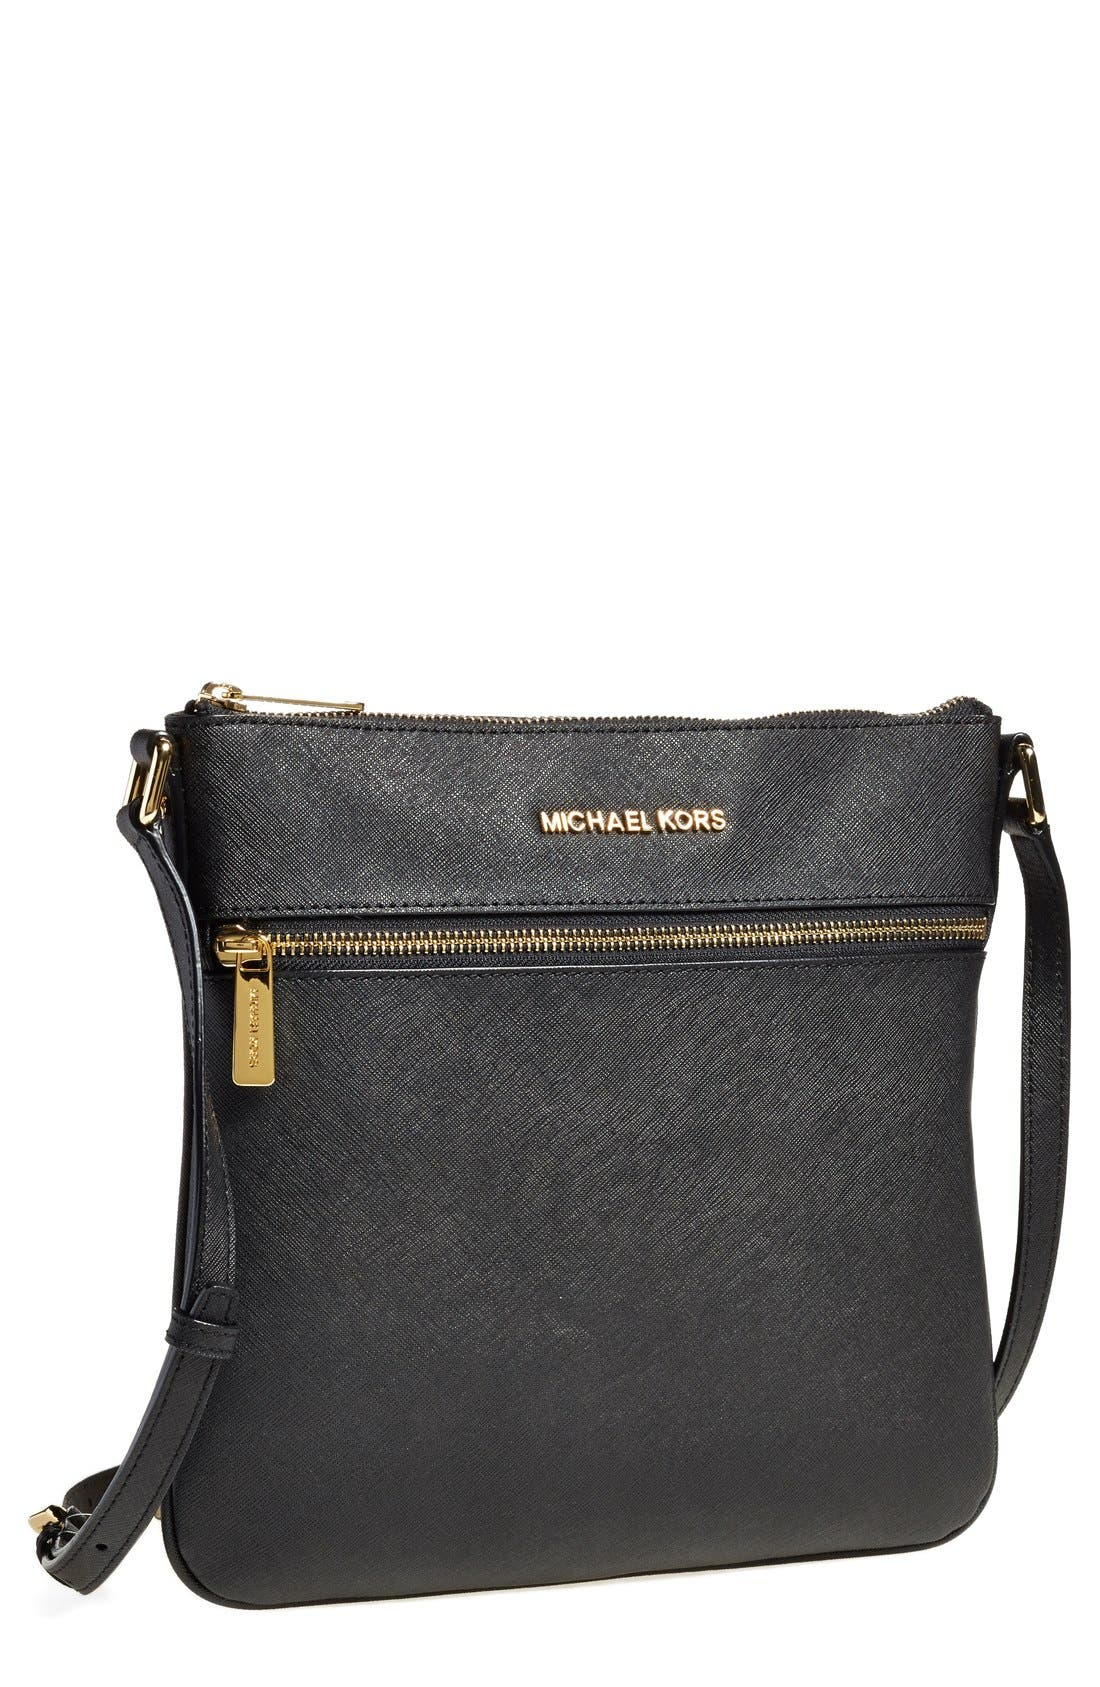 'Bedford' Saffiano Leather Crossbody Bag,                             Main thumbnail 1, color,                             001